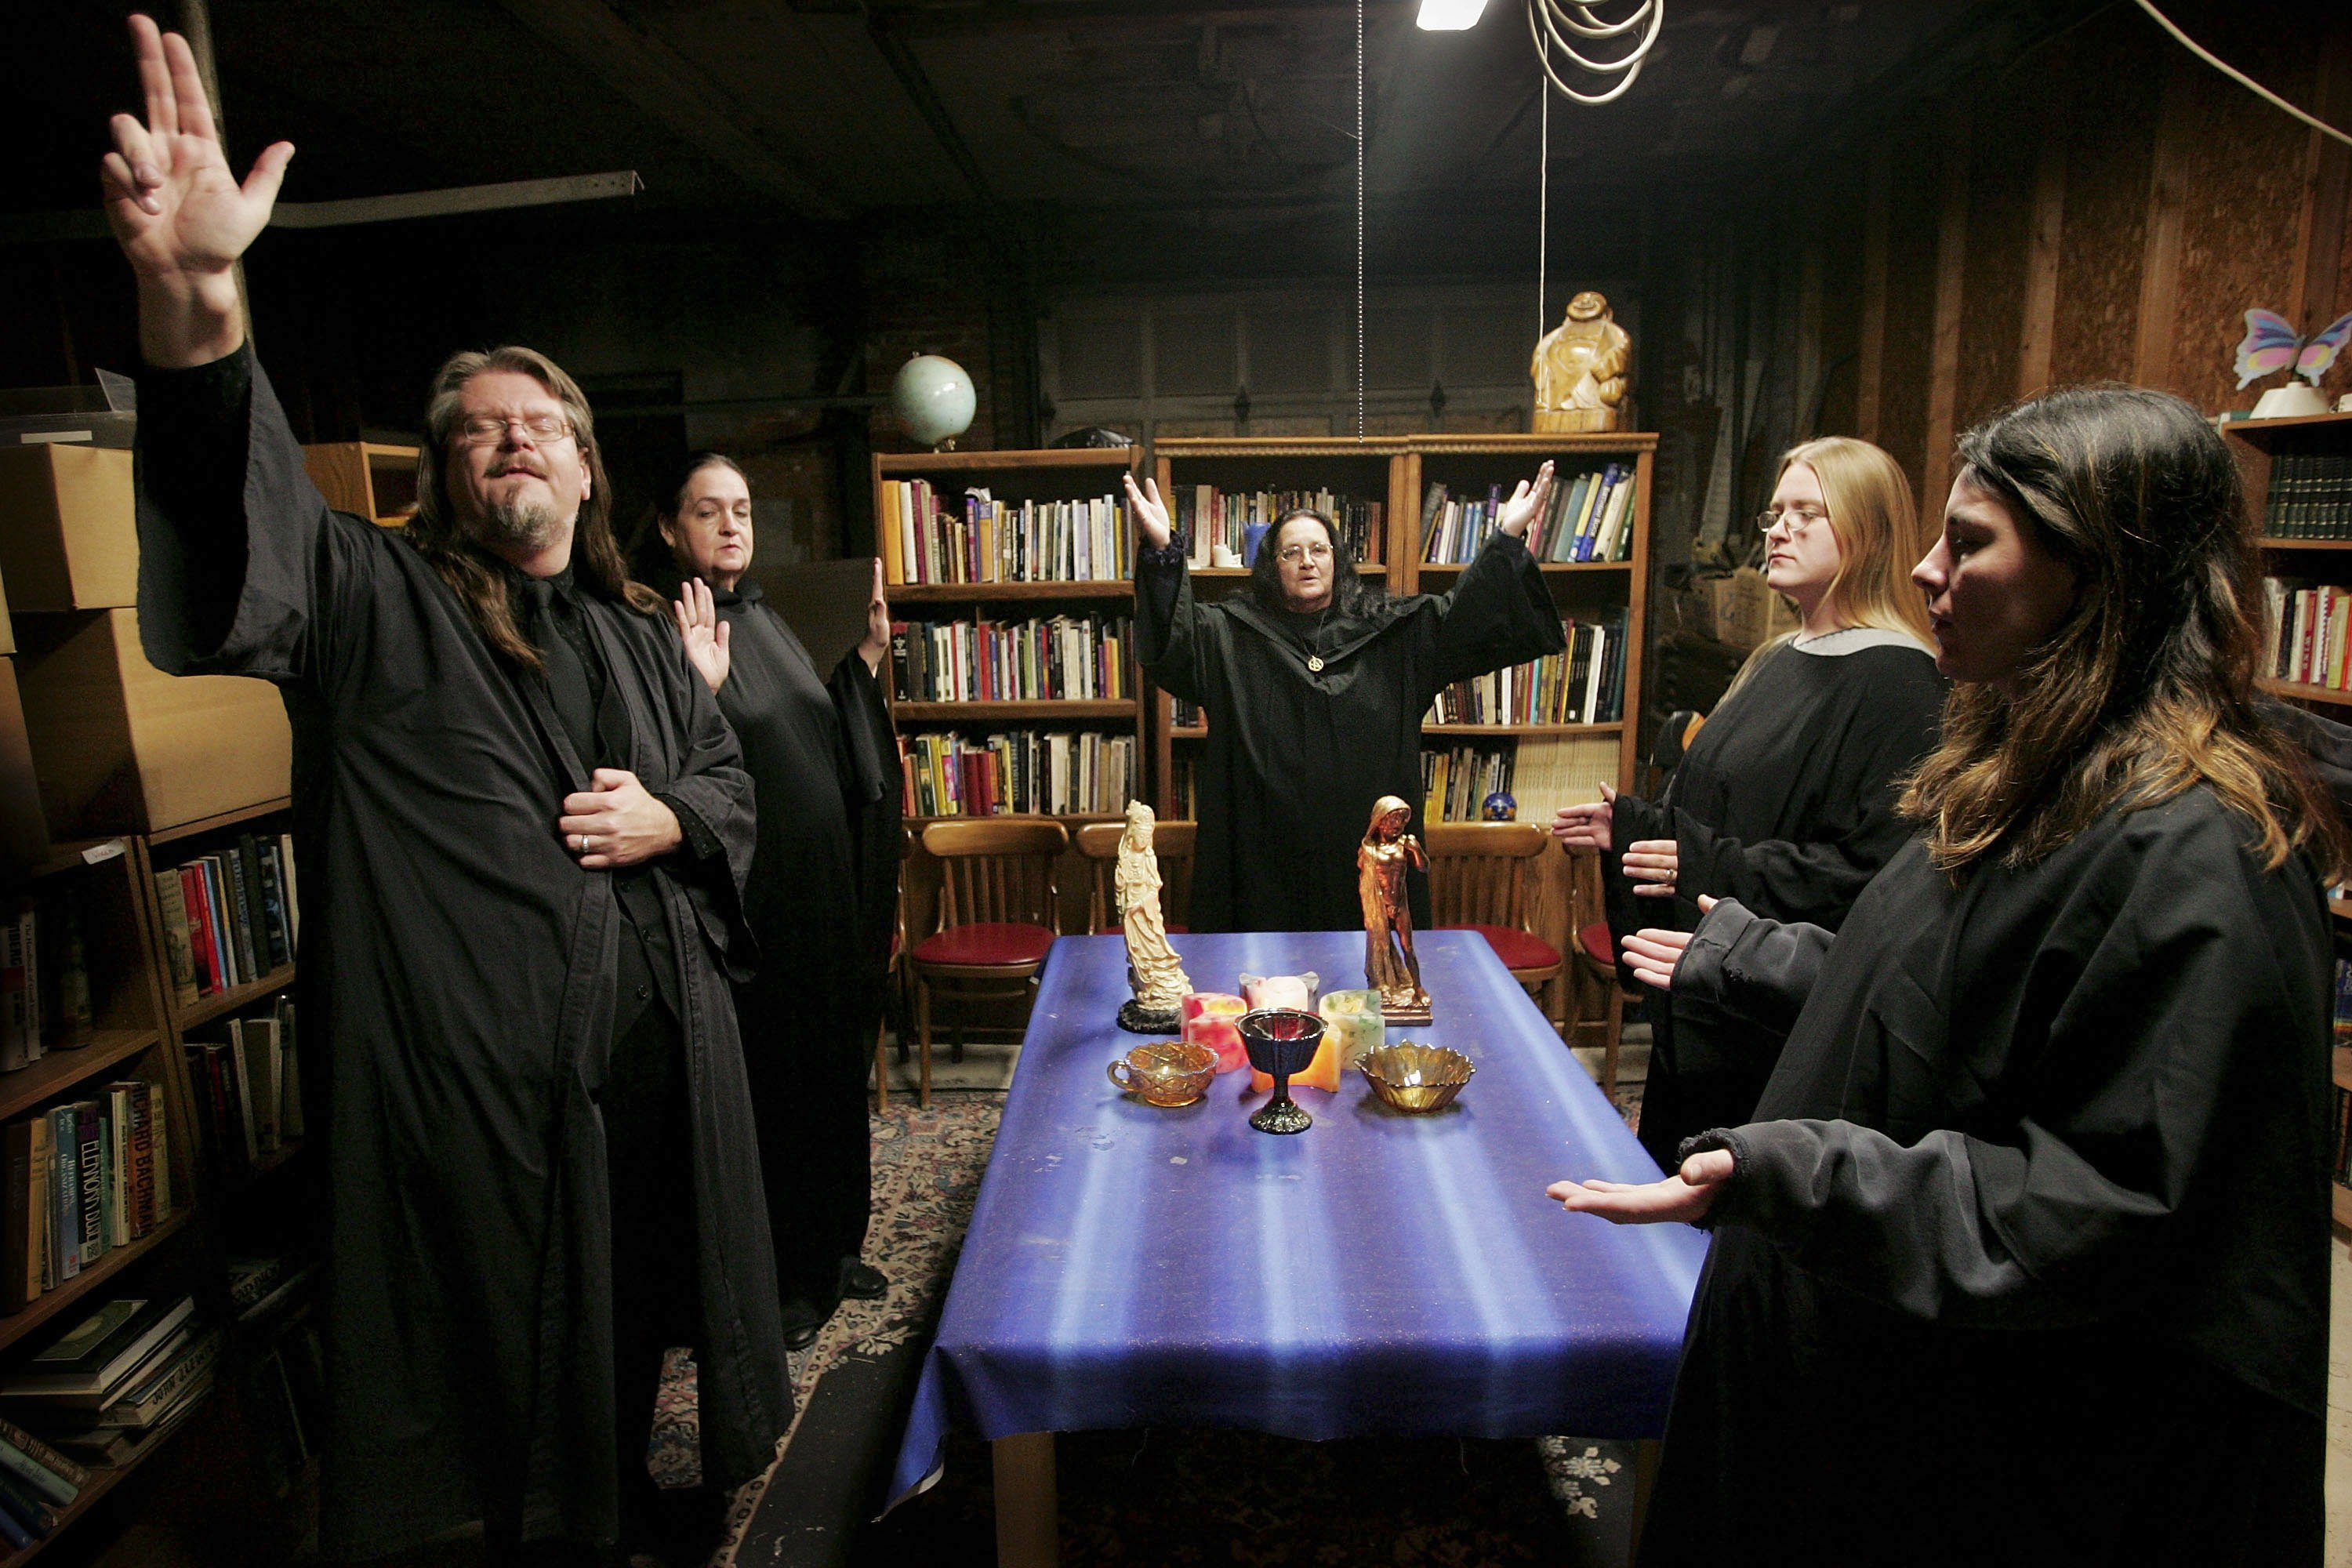 Wicca religion practitioners (L-R) Rev. Don Lewis, Rev. Krystal High-Correll, and Rev. Virgina Powell HPS and student Ashleigh Powell and Cathy Smith participate in a Wiccan Lunar ritual in the temple at the Witch School October 25, 2006 in Hoopeston, Illinois. Wicca is a neo-Pagan religion which uses magic and nature in its teachings. The school, which opened in 2003, offers courses in Wicca theology, hosts seminars and Wiccan rituals at the campus. (Photo by Scott Olson/Getty Images)